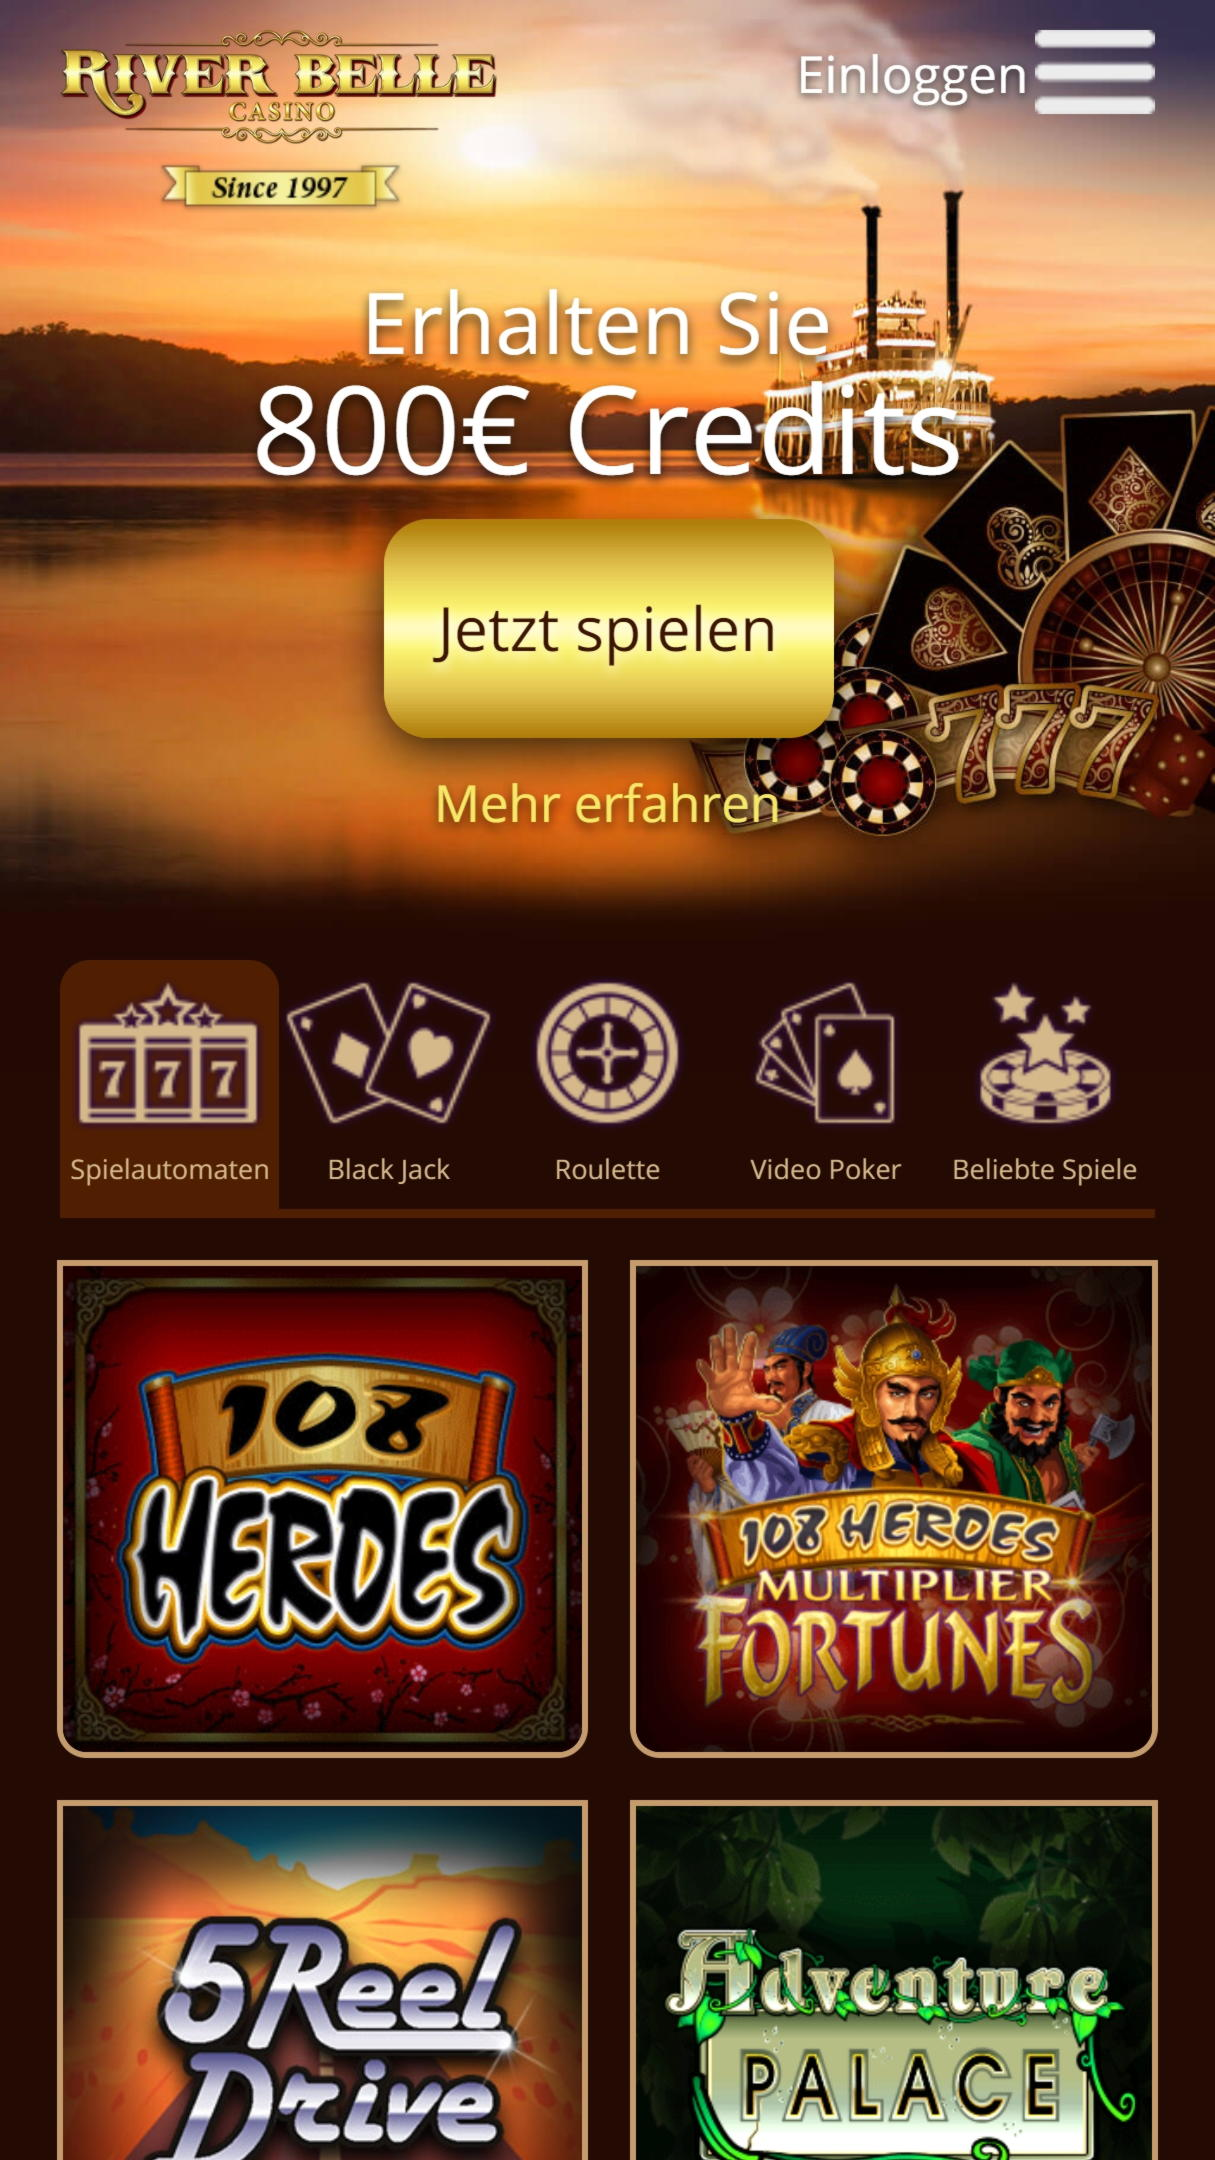 € 515 Casino Chip GRATUITO ai jackpot Treasure Island (Sloto Cash Mirror)